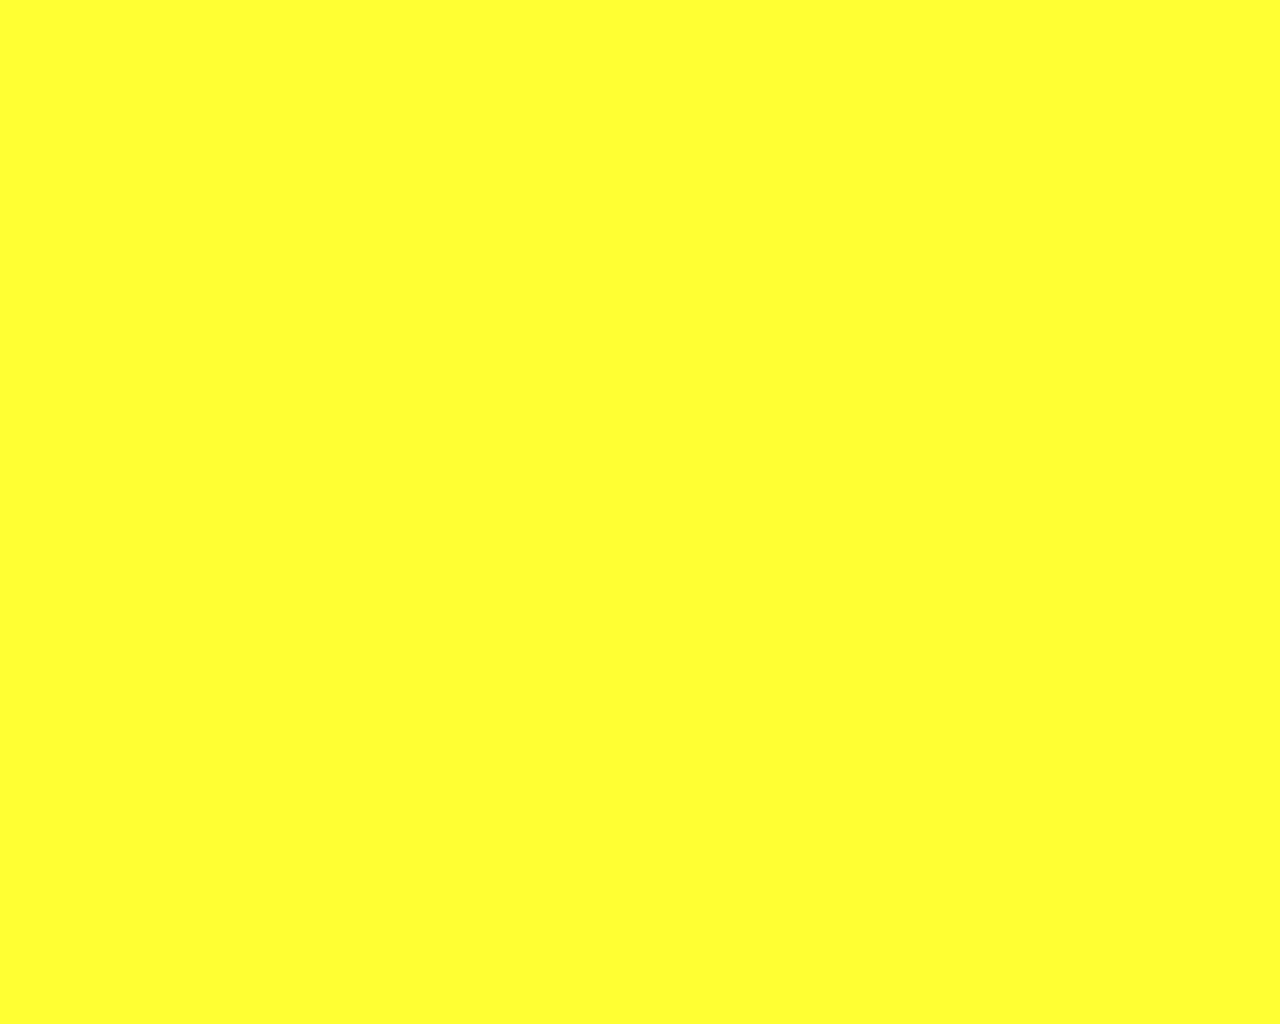 1280x1024 Electric Yellow Solid Color Background